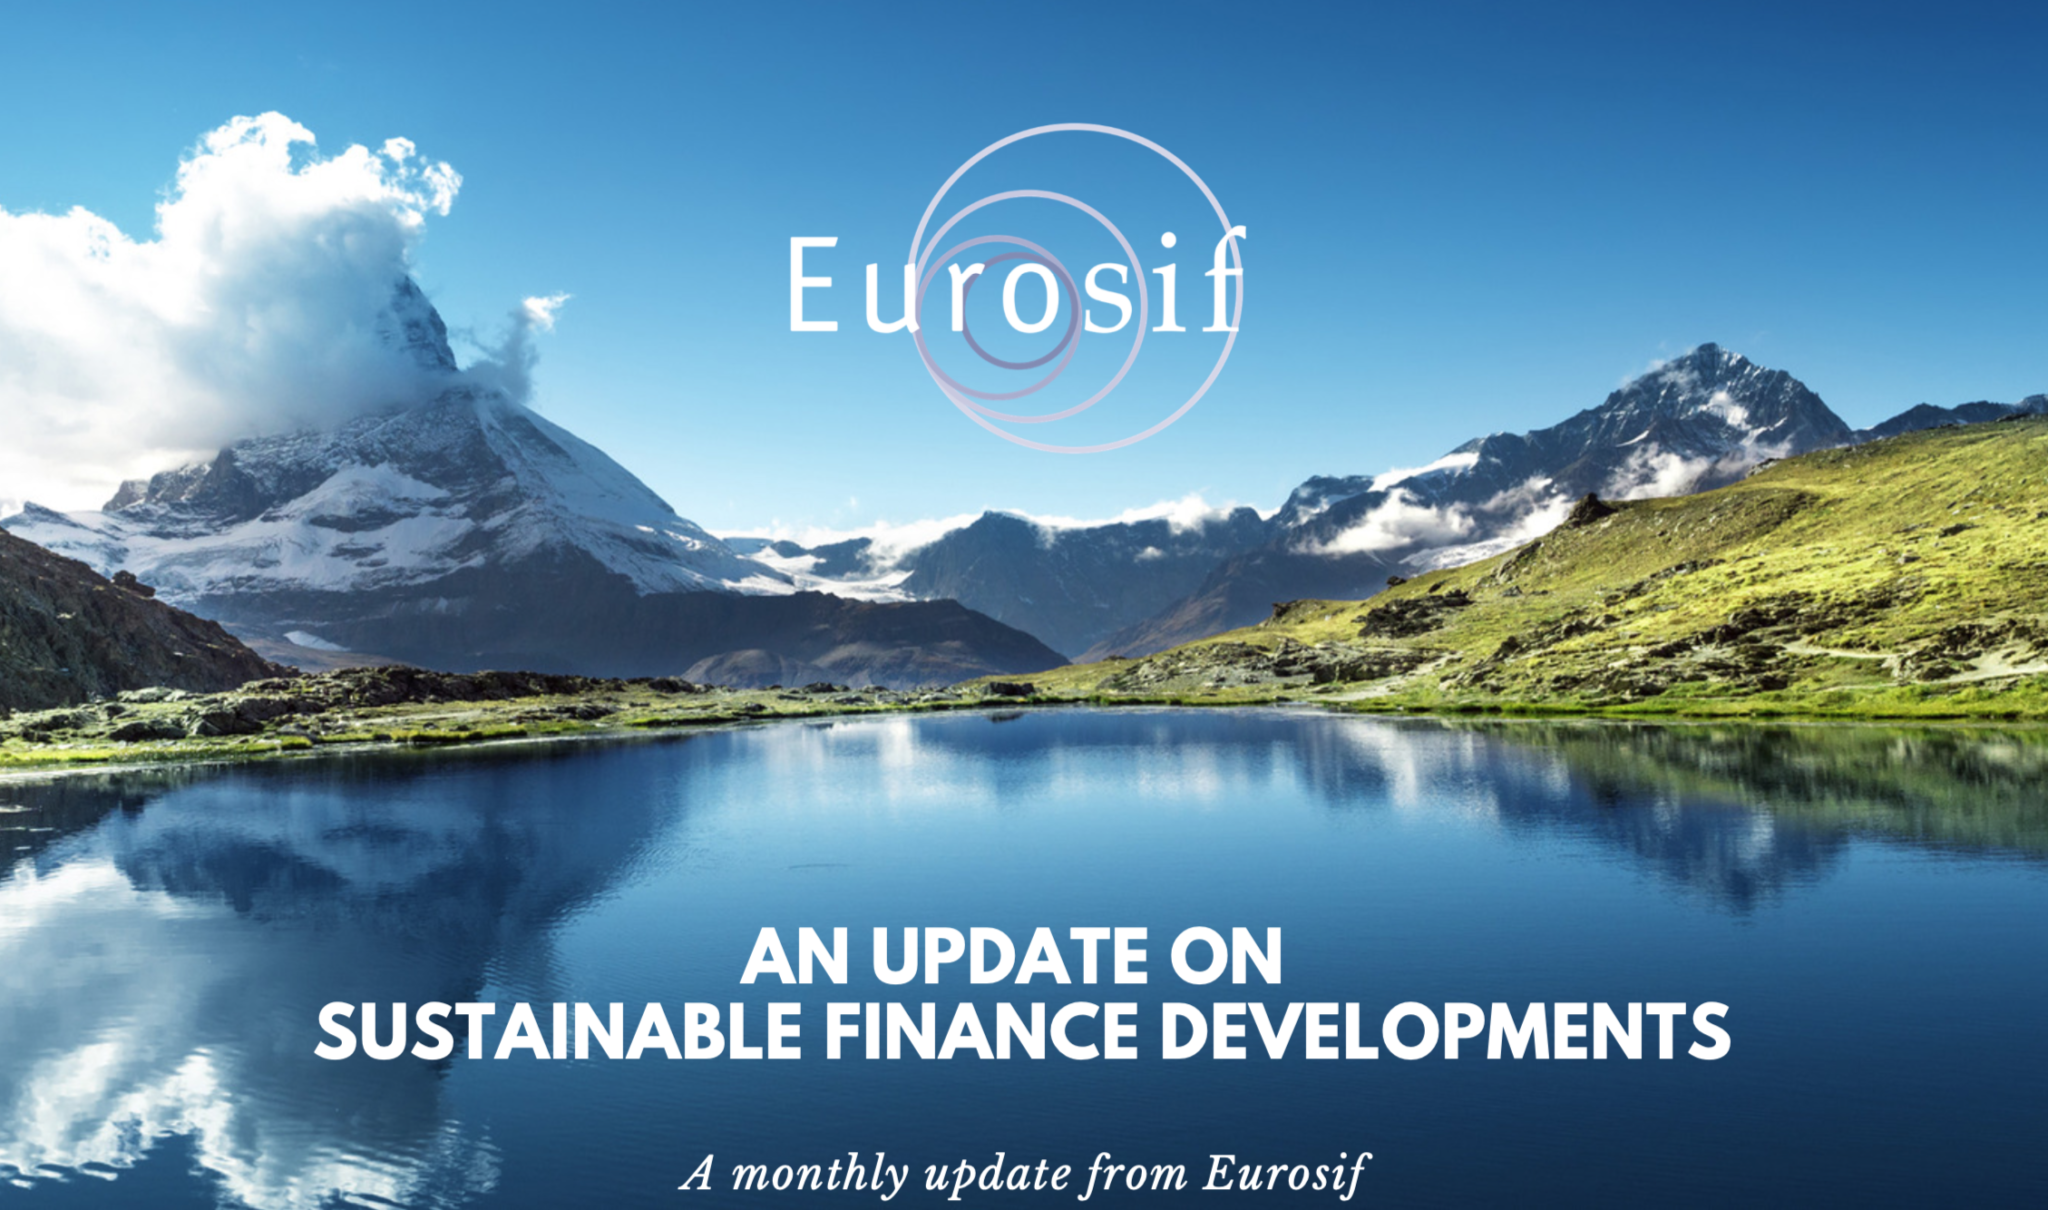 Eurosif: July update on Sustainable Finance Developments - Preview Image